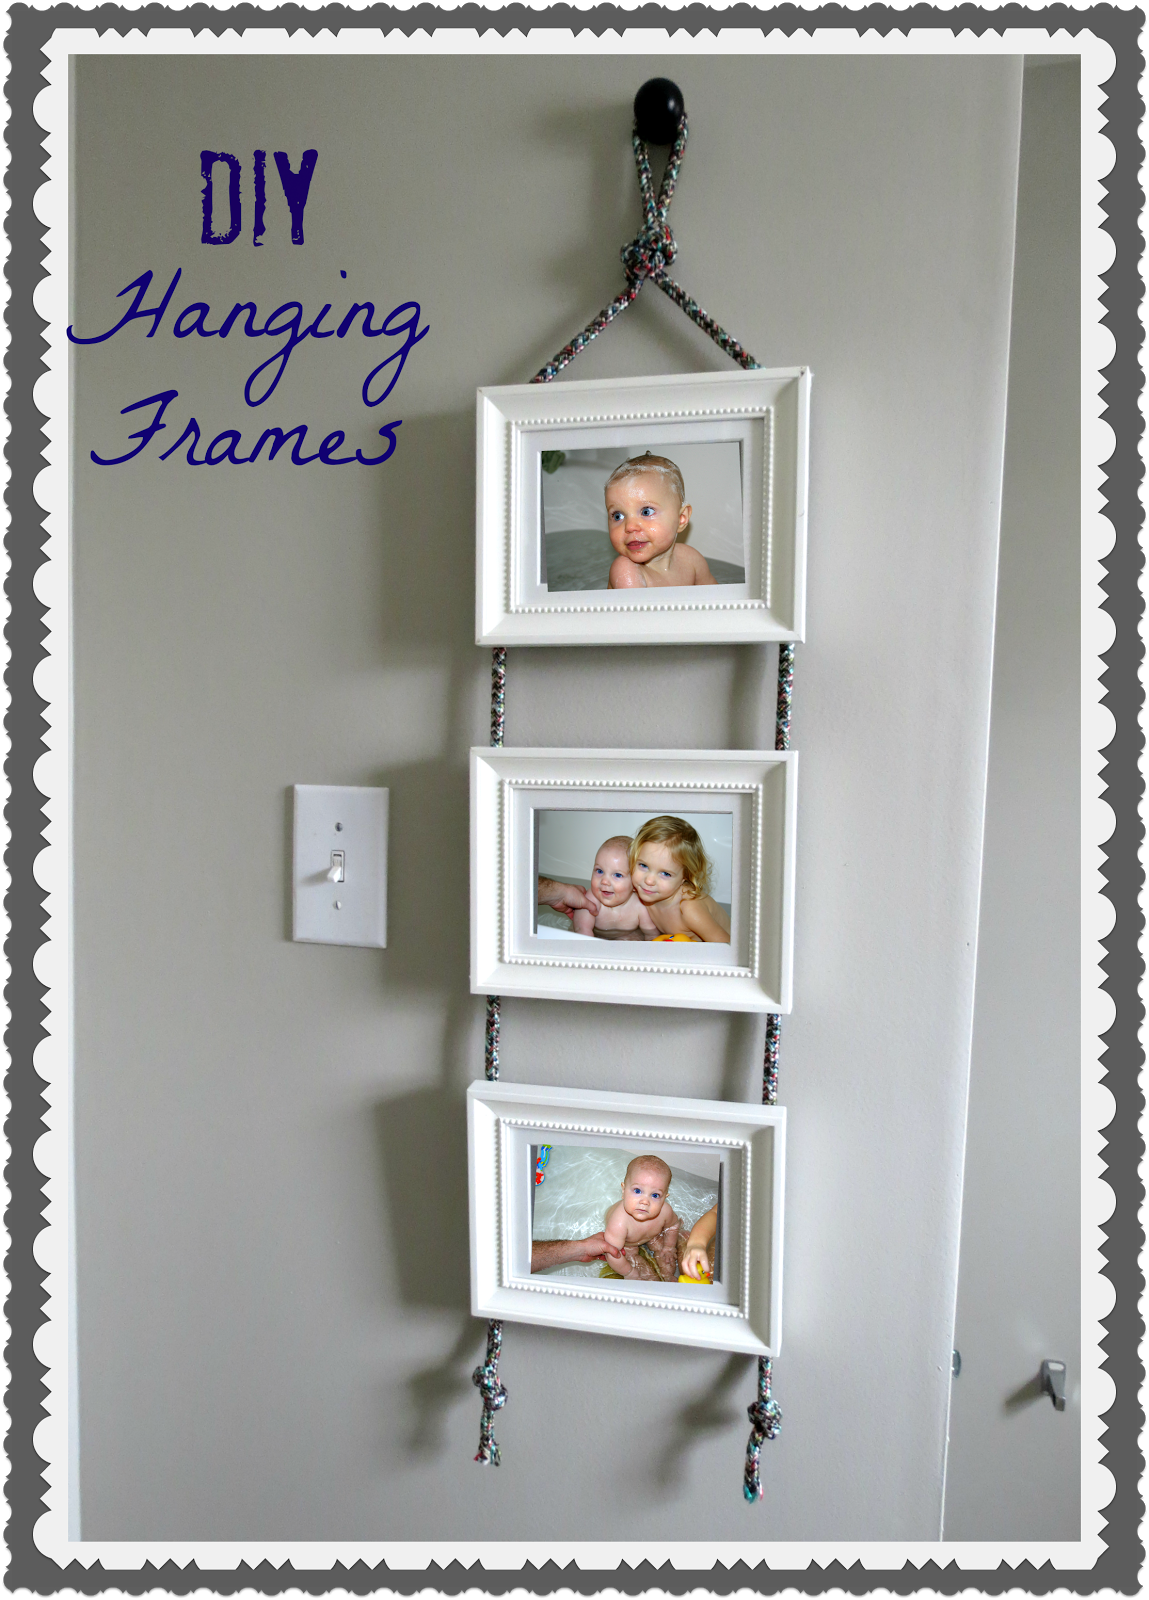 Diy hanging frames tutorial tatertots and jello for Hanging frames on walls